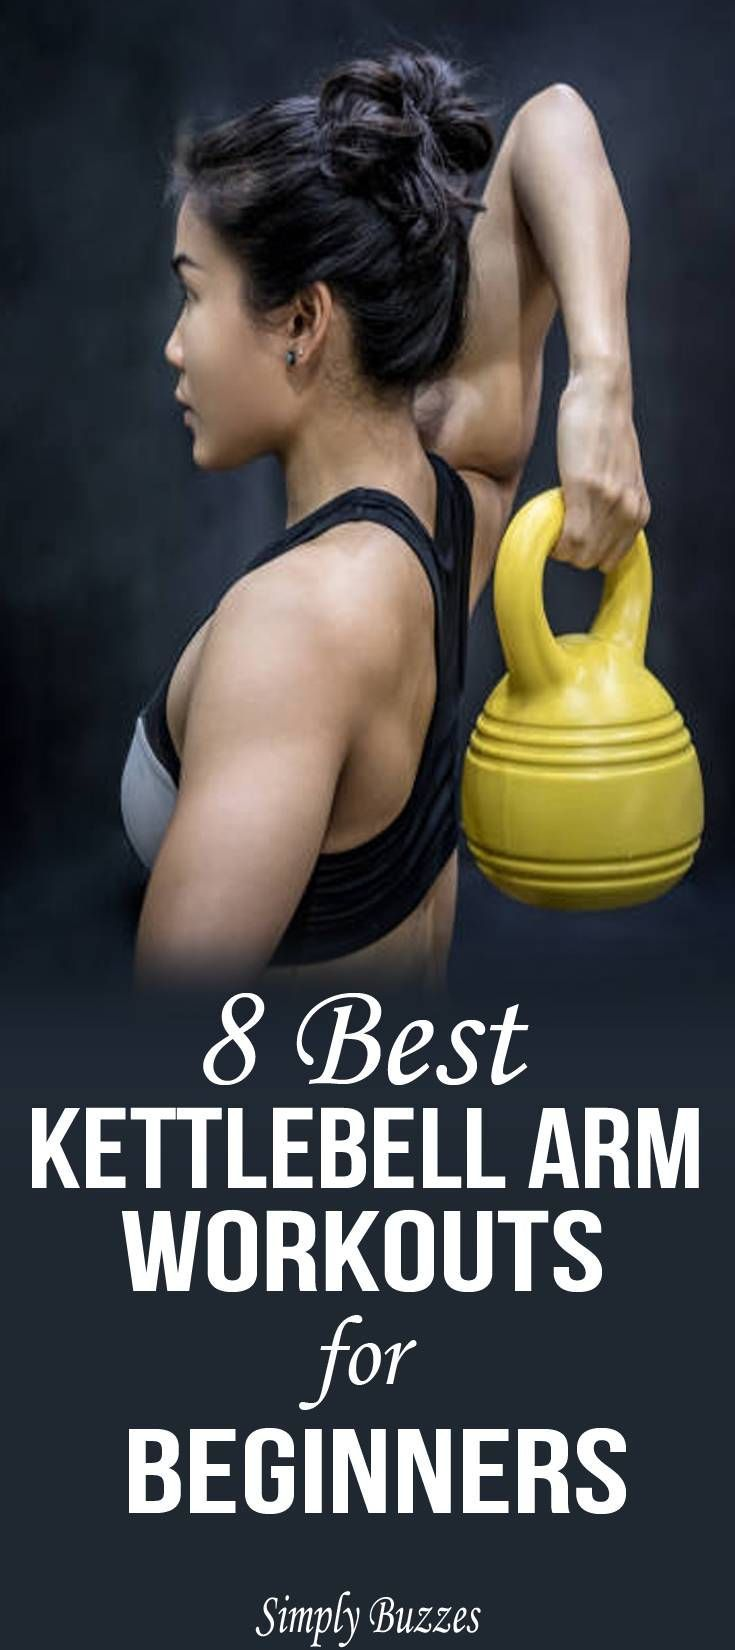 The 20-minute fat-burning kettlebell workout